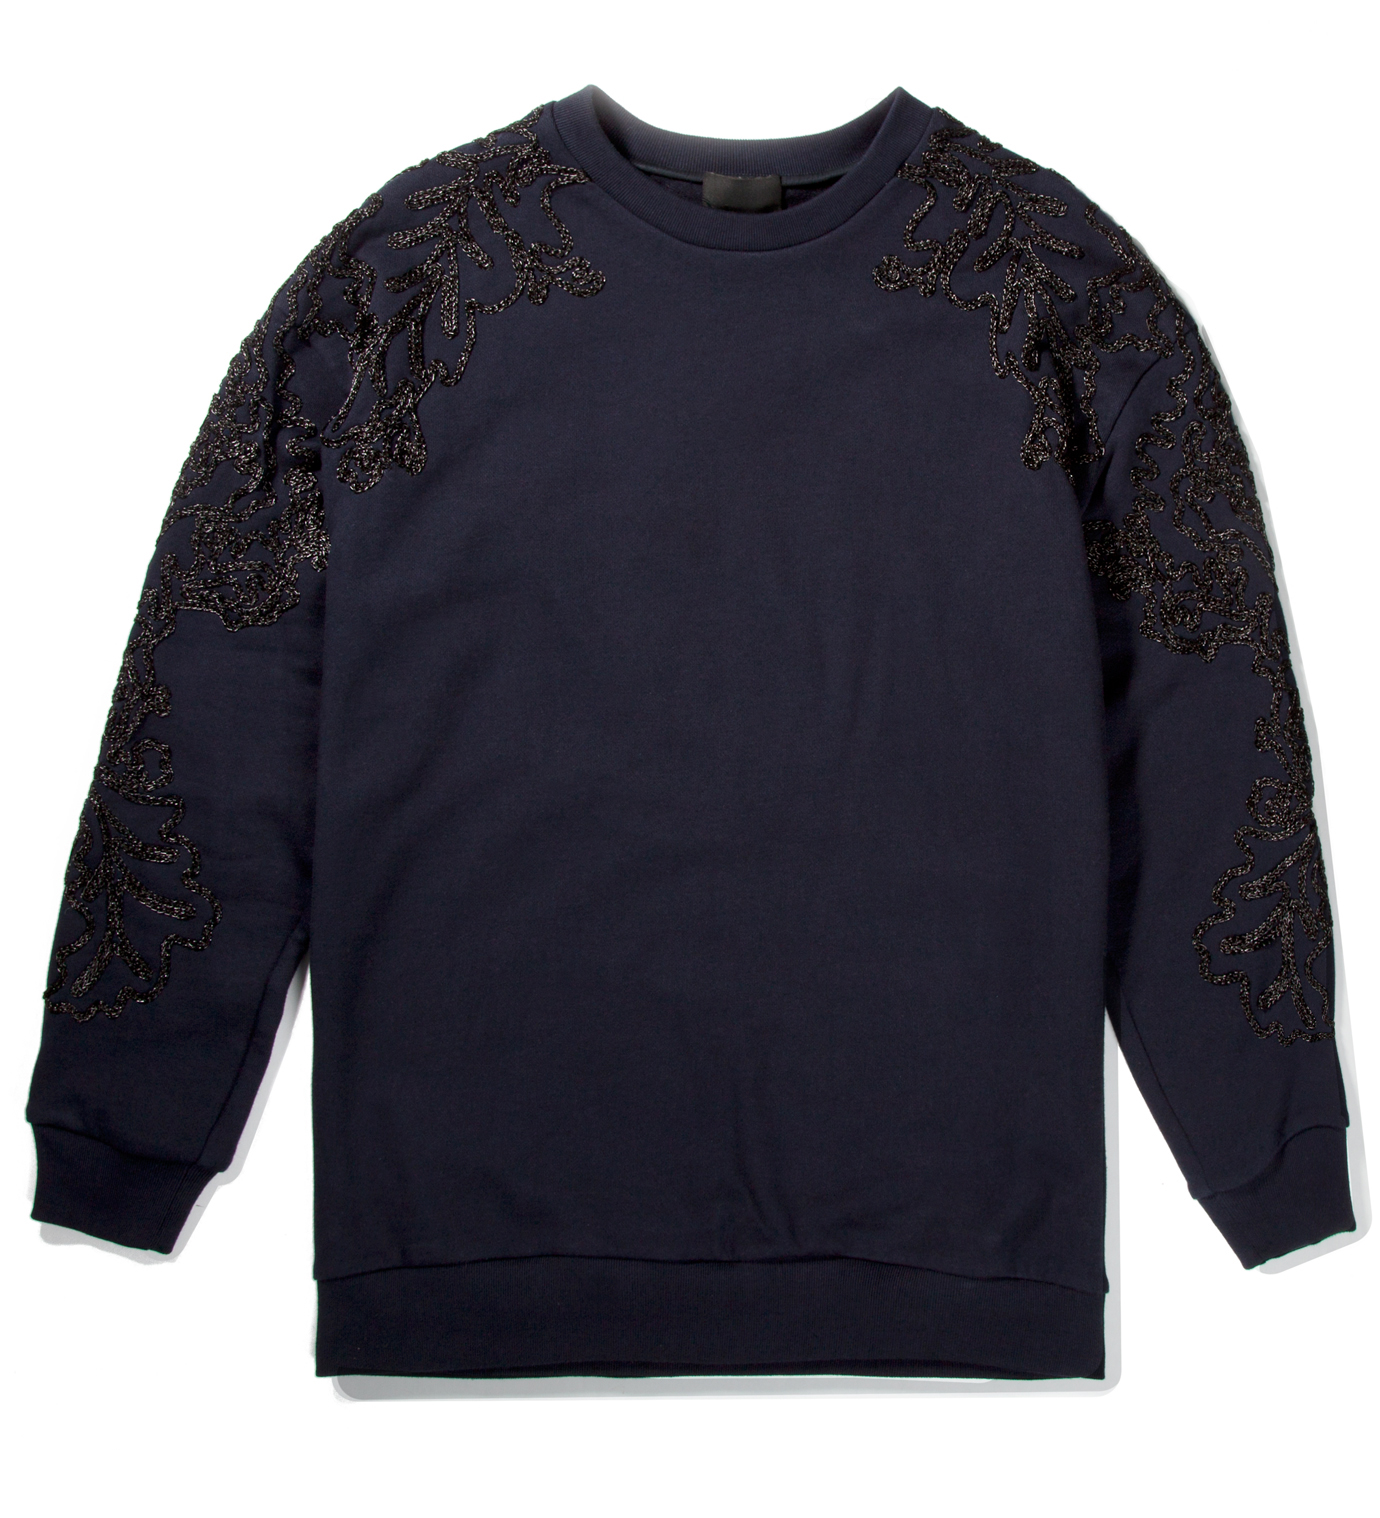 3.1 Phillip Lim Navy Oversized Pullover with Metallic Floral Applique